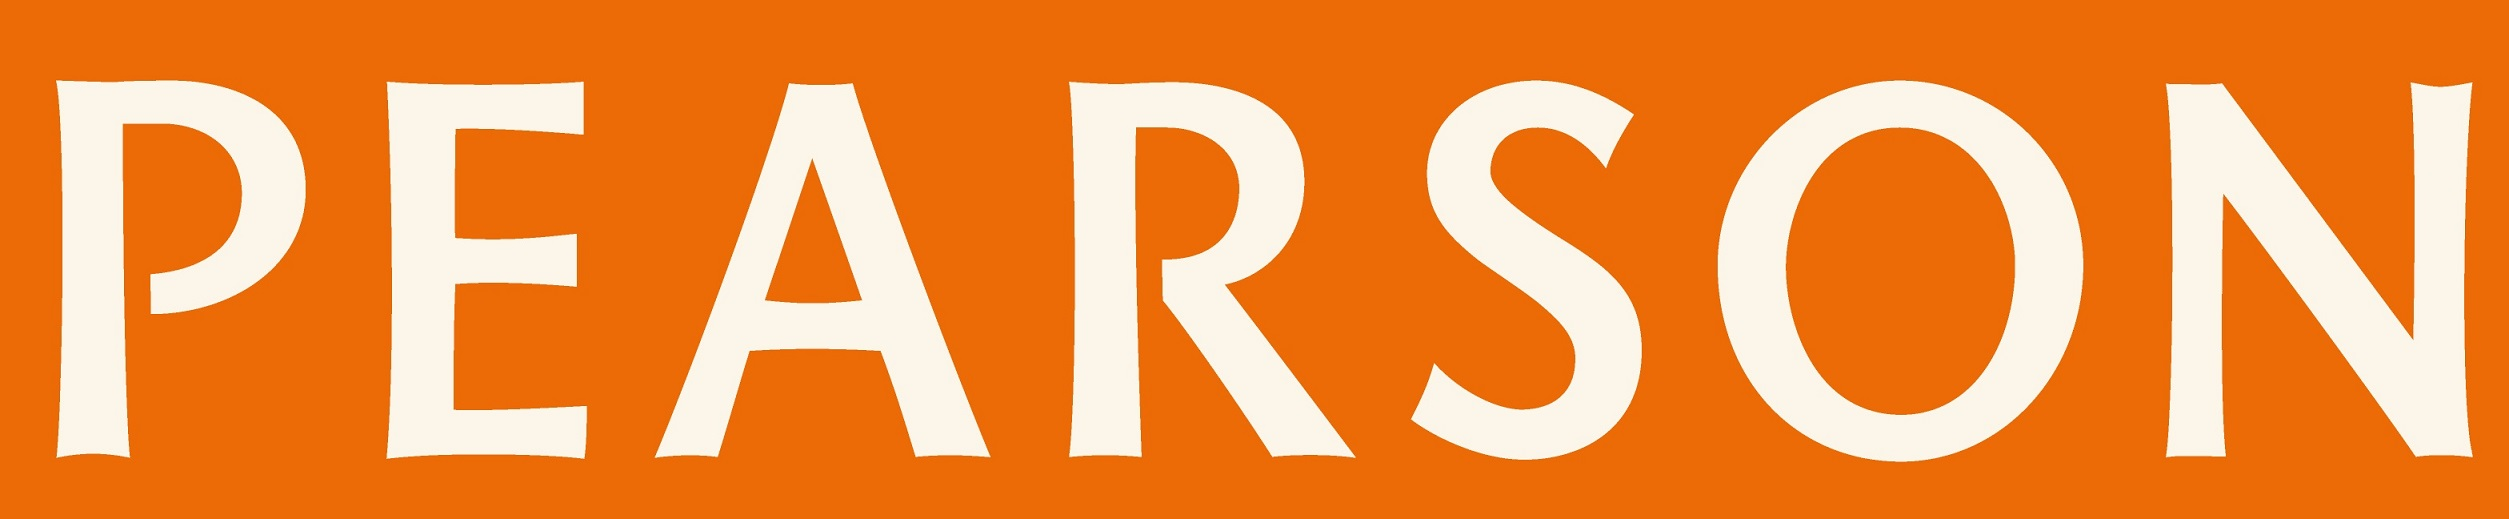 Pearson_Without_Strapline_Orange_RGB_HiRes